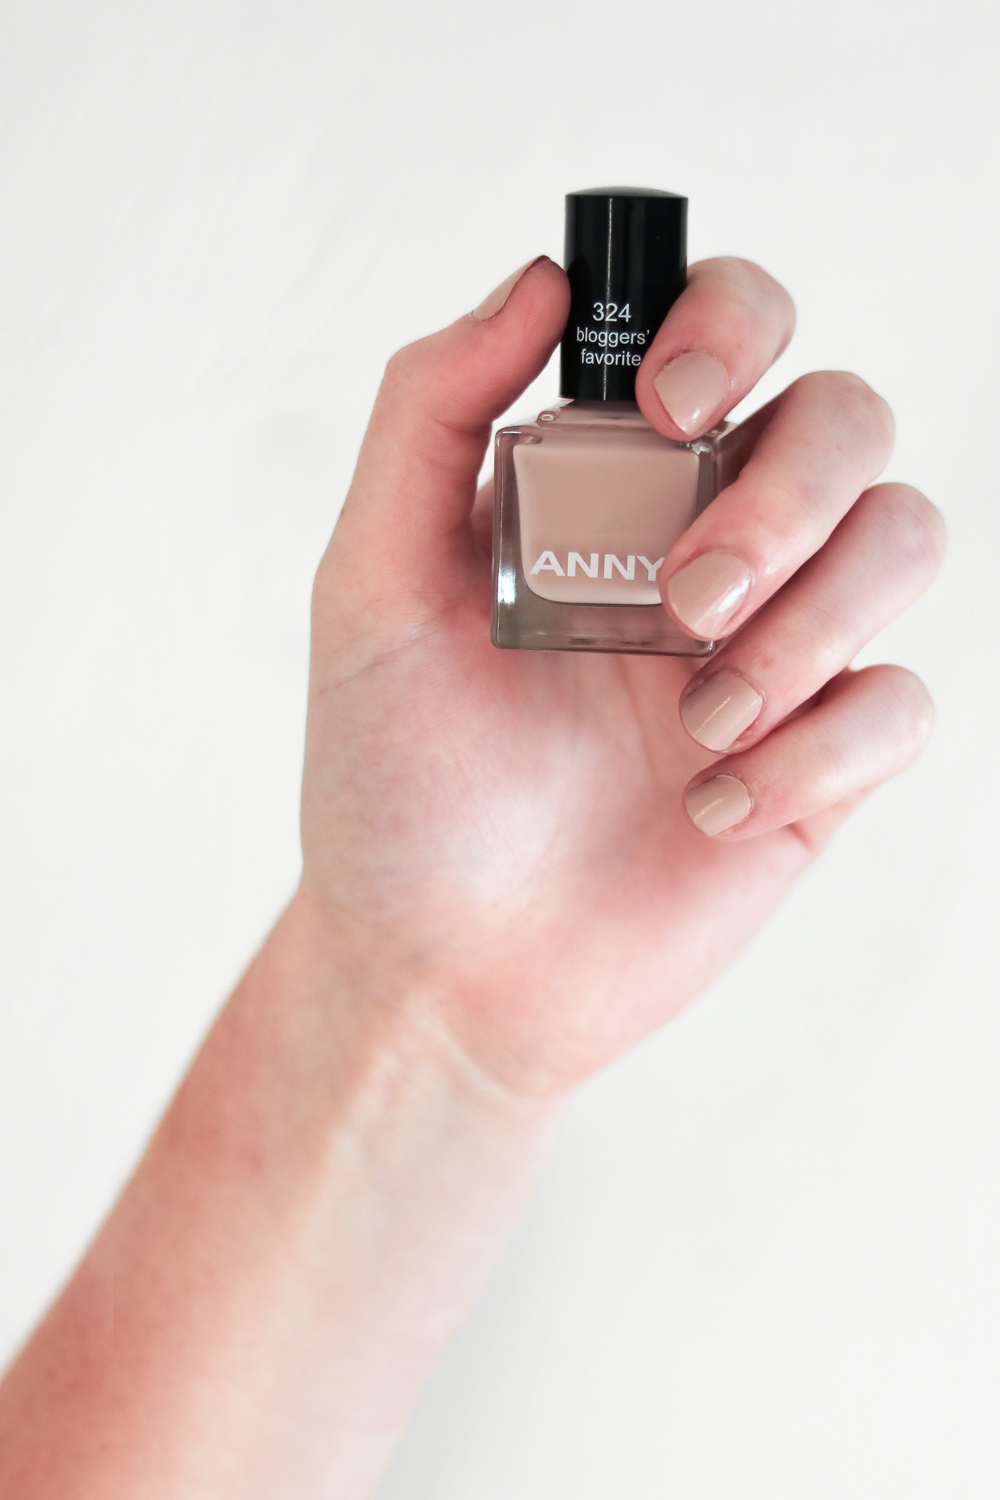 Anny Nail Polish in Bloggers' Favorite | 9Lives